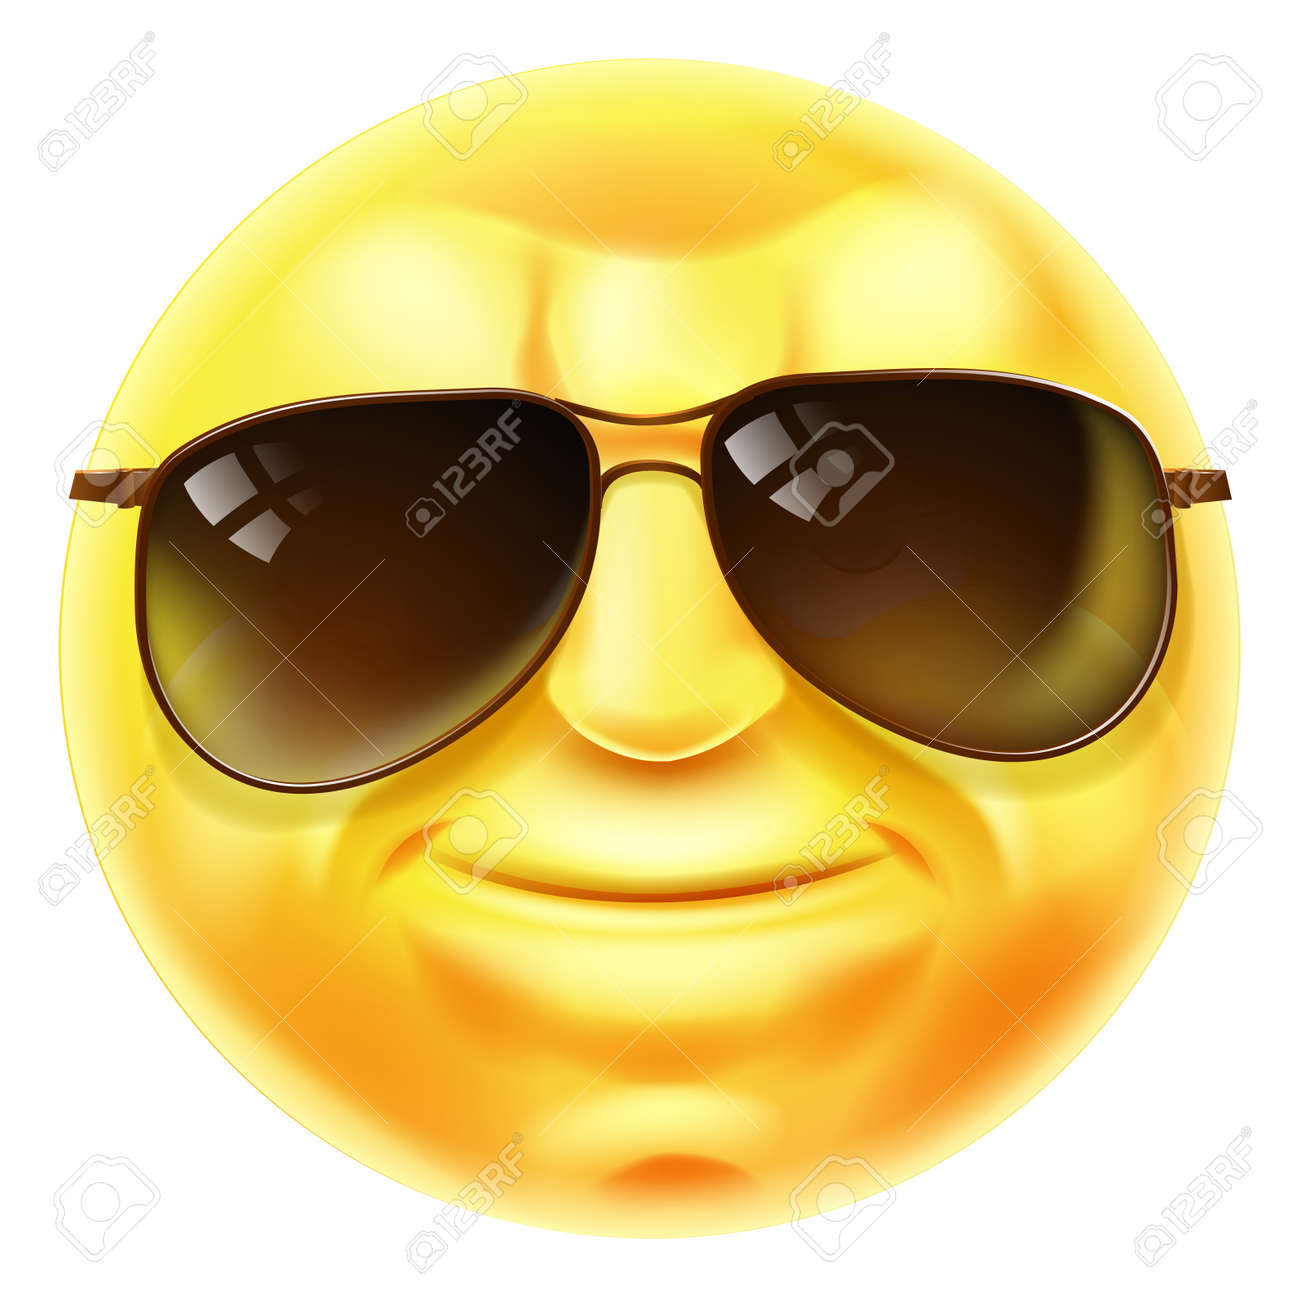 Cool Smiley Face With Shades